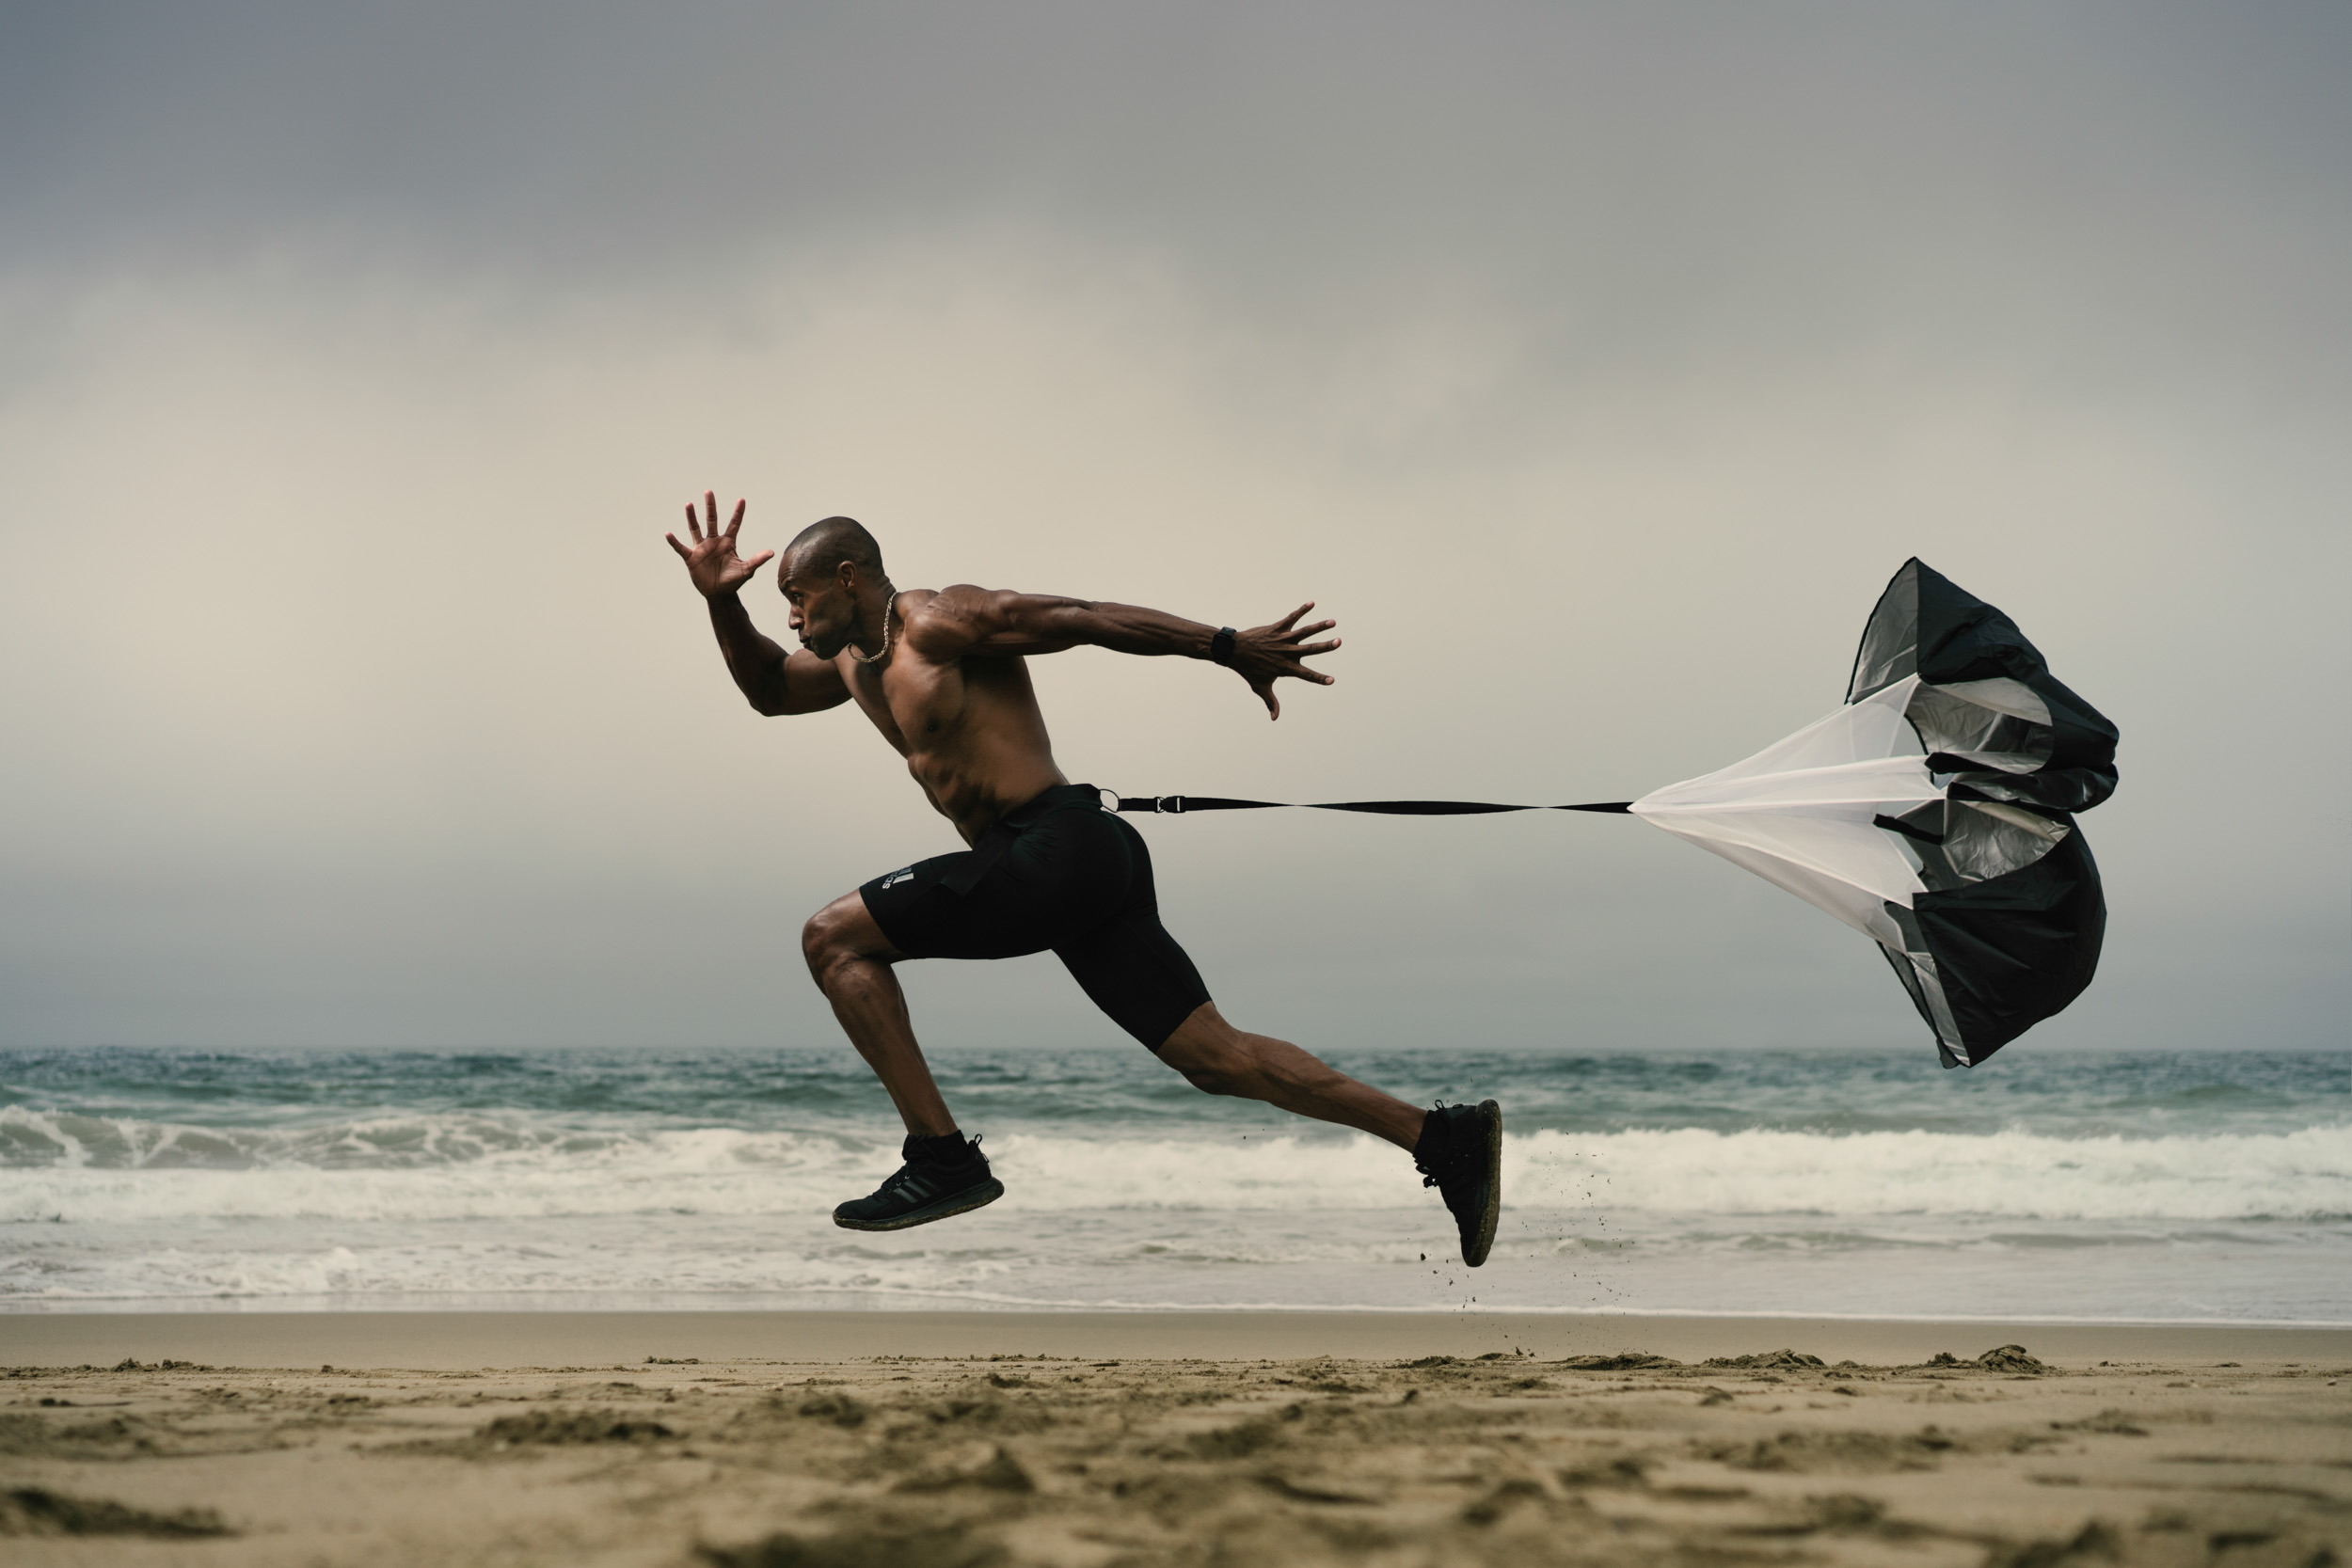 Male athlete with no shirt sprints with parachute during a morning exercise on a foggy beach